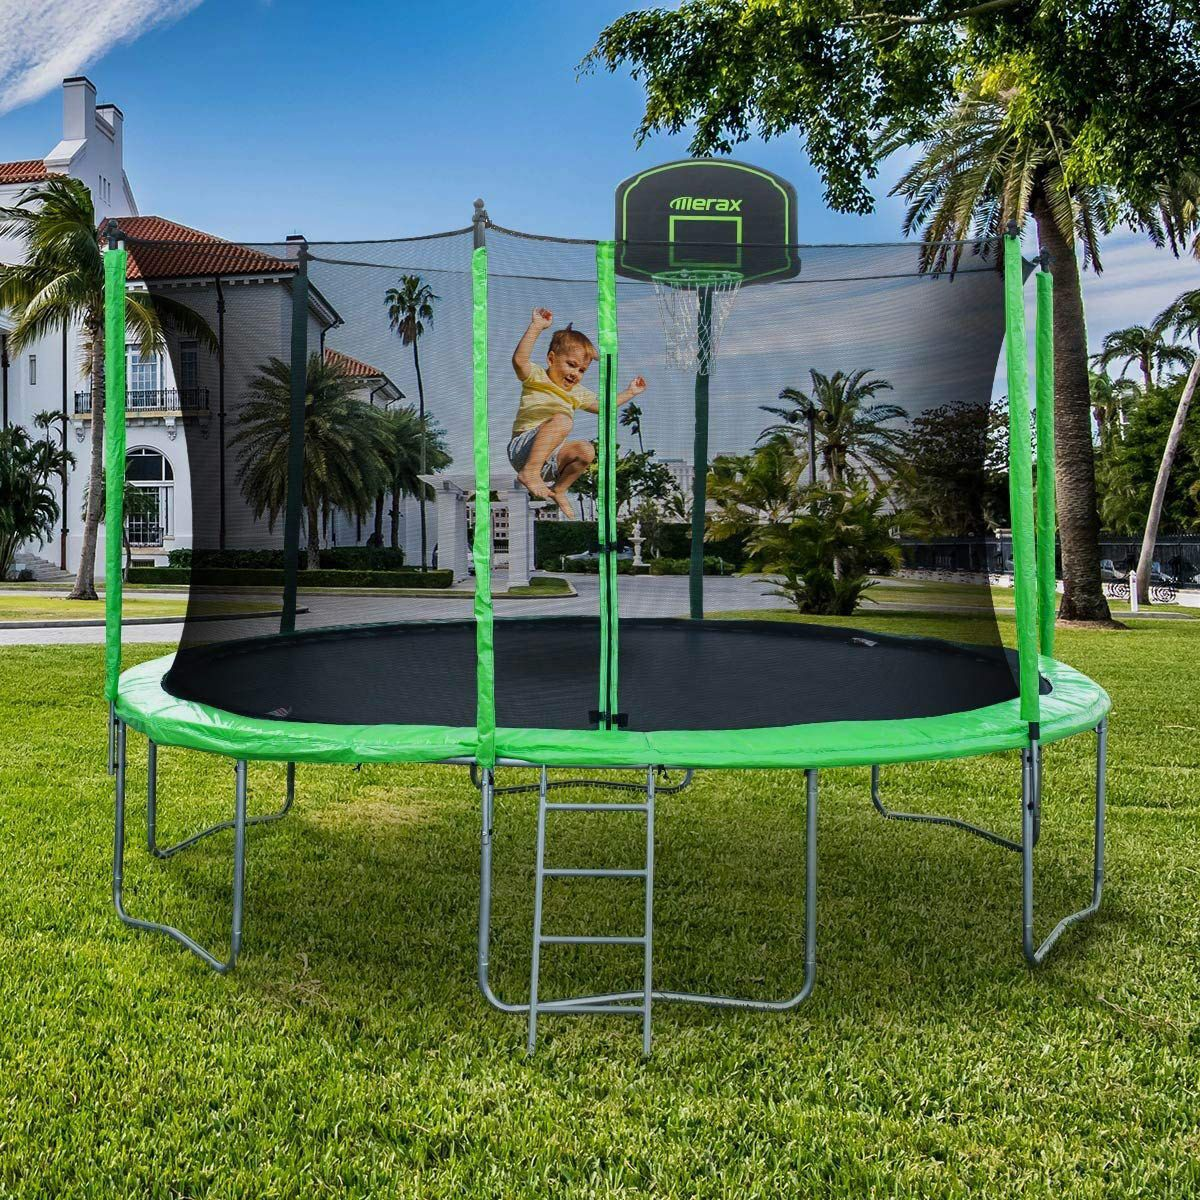 Merax 12-Feet Round Trampoline With Safety Enclosure, Basketball Hoop, and Ladder